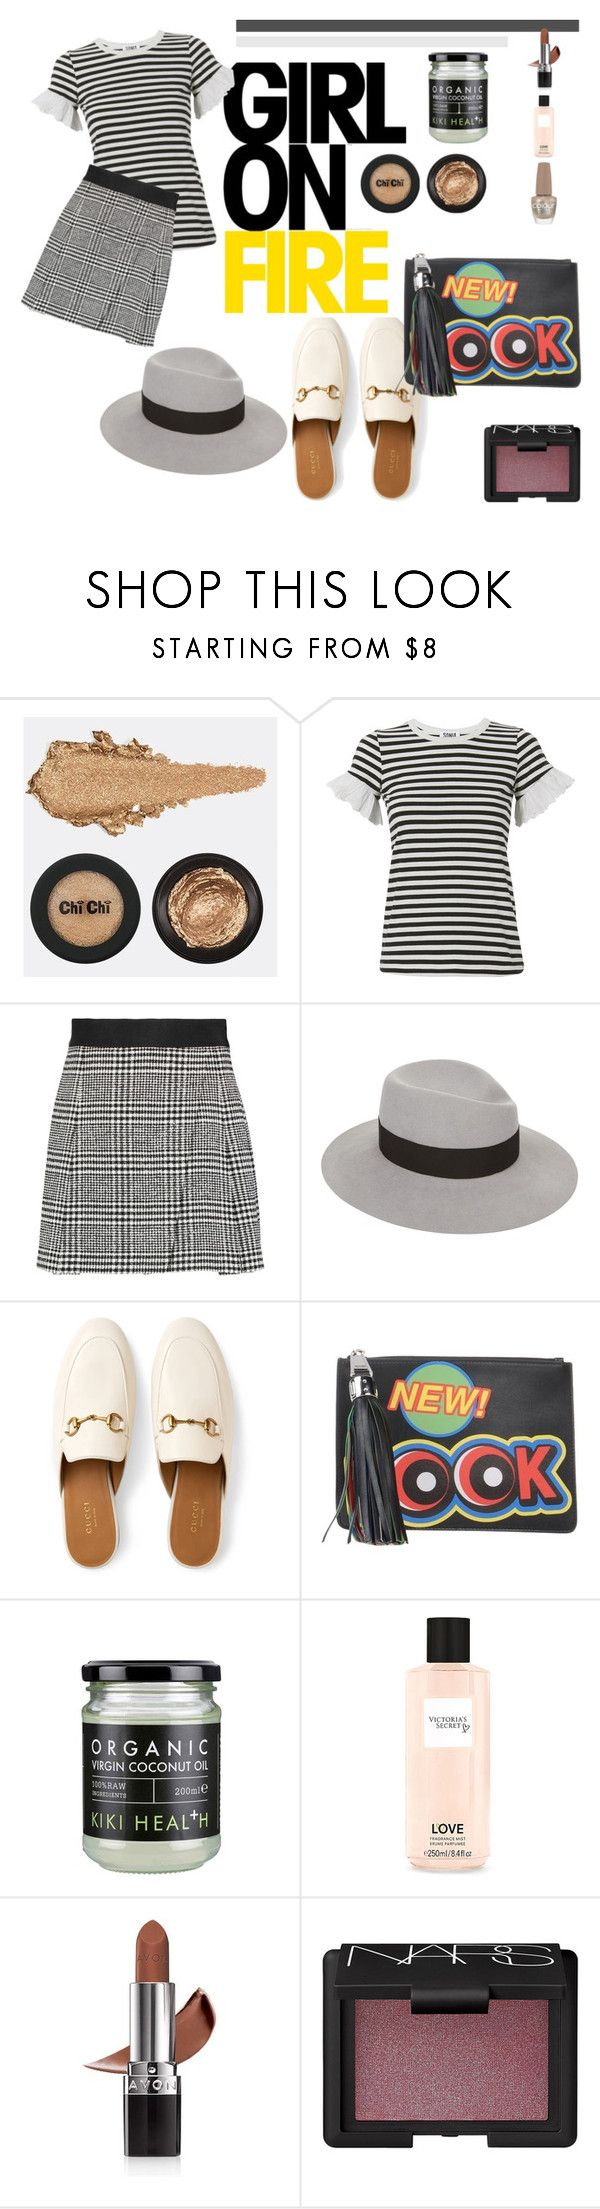 """Endlessly"" by chelsofly ❤ liked on Polyvore featuring Sonia by Sonia Rykiel, Alice + Olivia, Maison Michel, Gucci, Moschino, Victoria's Secret, Avon and NARS Cosmetics"